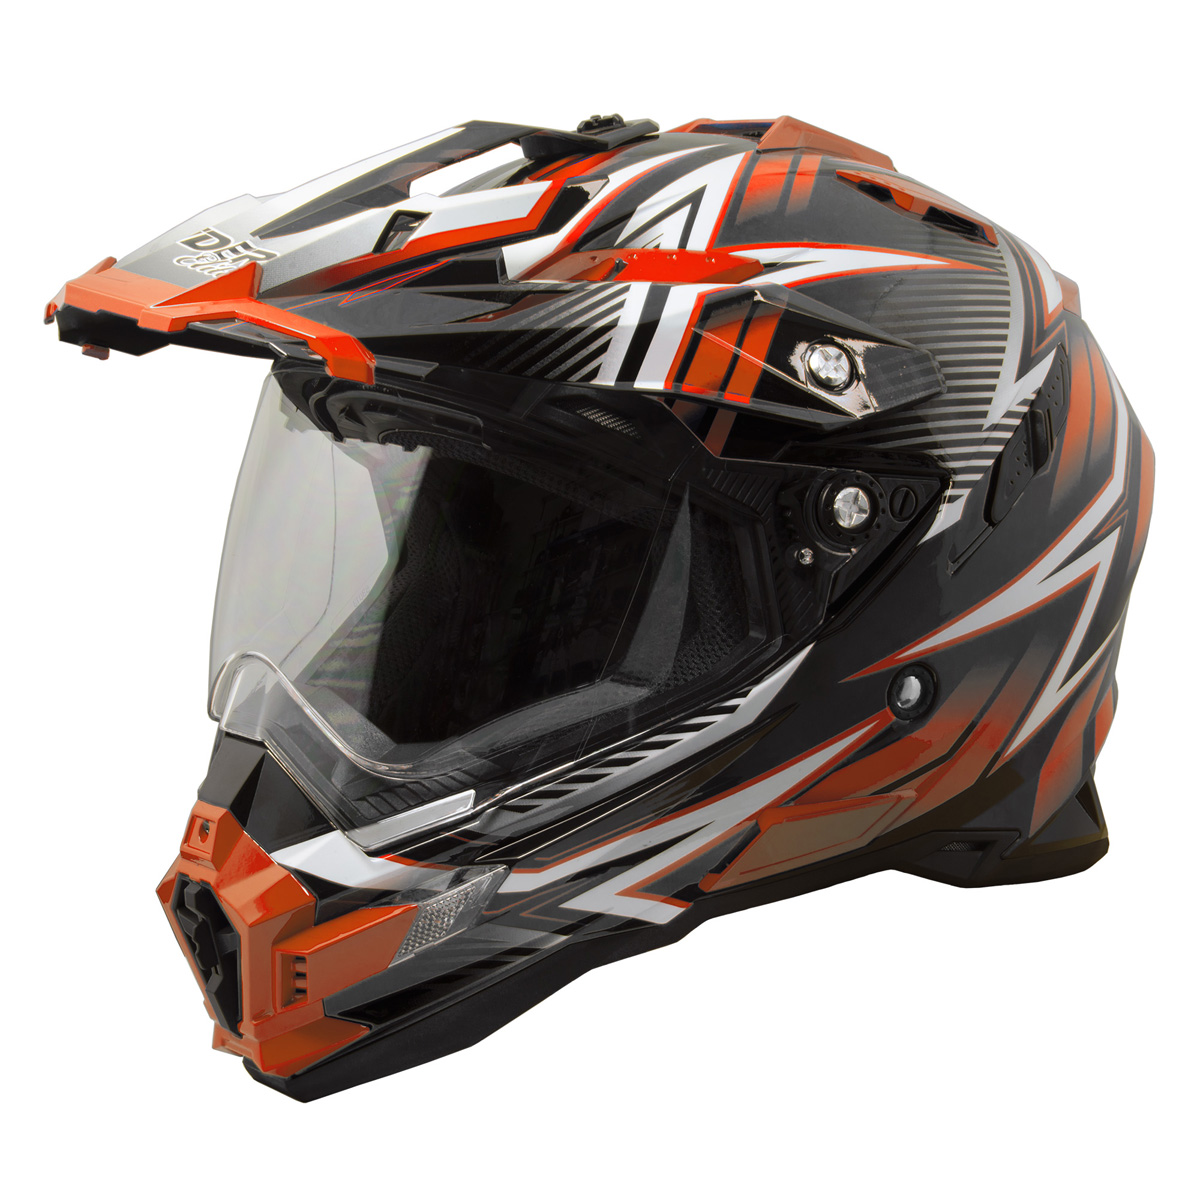 Raider Elite Eclipse Dual Sport Helmet MX ATV Dirt Bike Off Road Motorcycle DOT